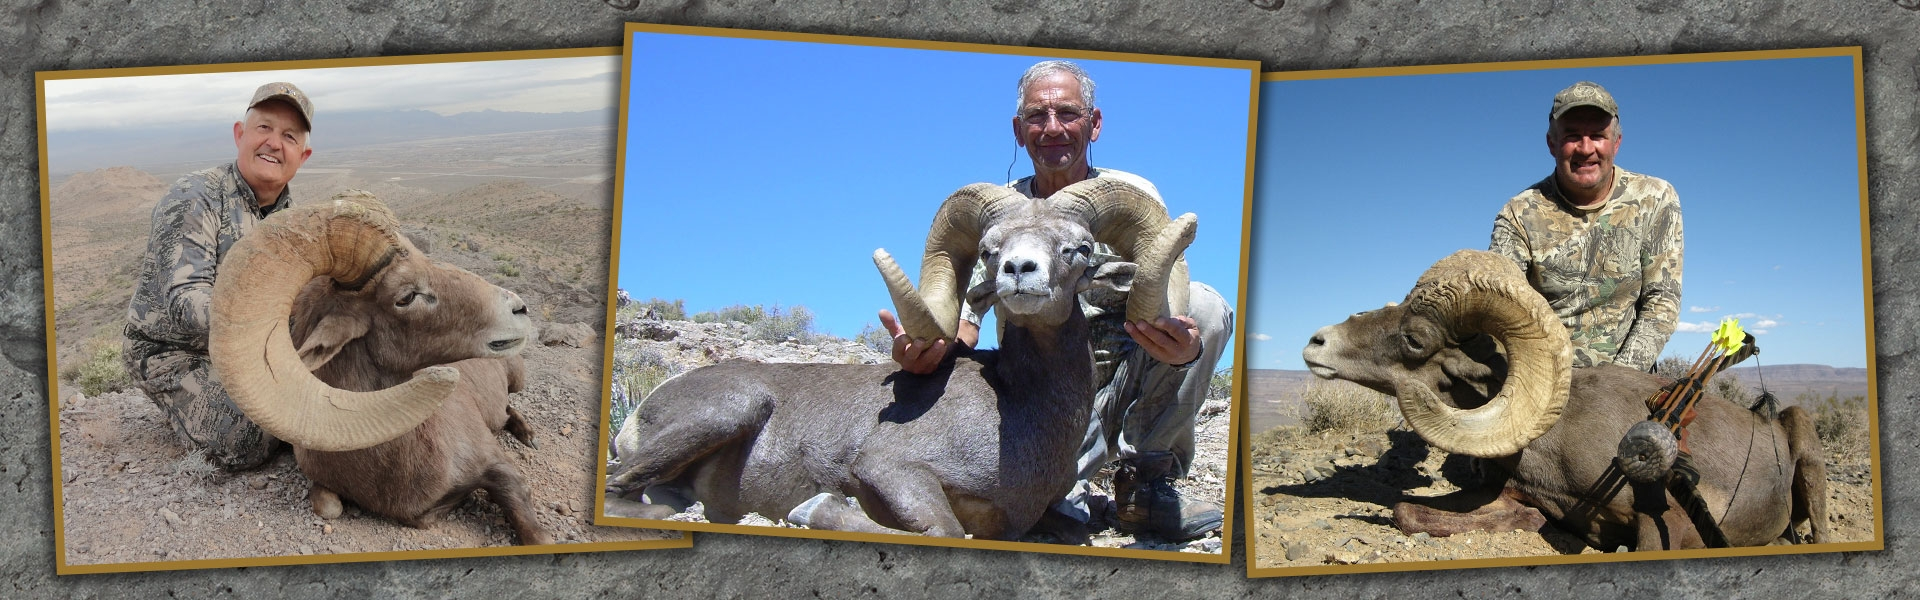 Nevada Bighorn Sheep Hunts